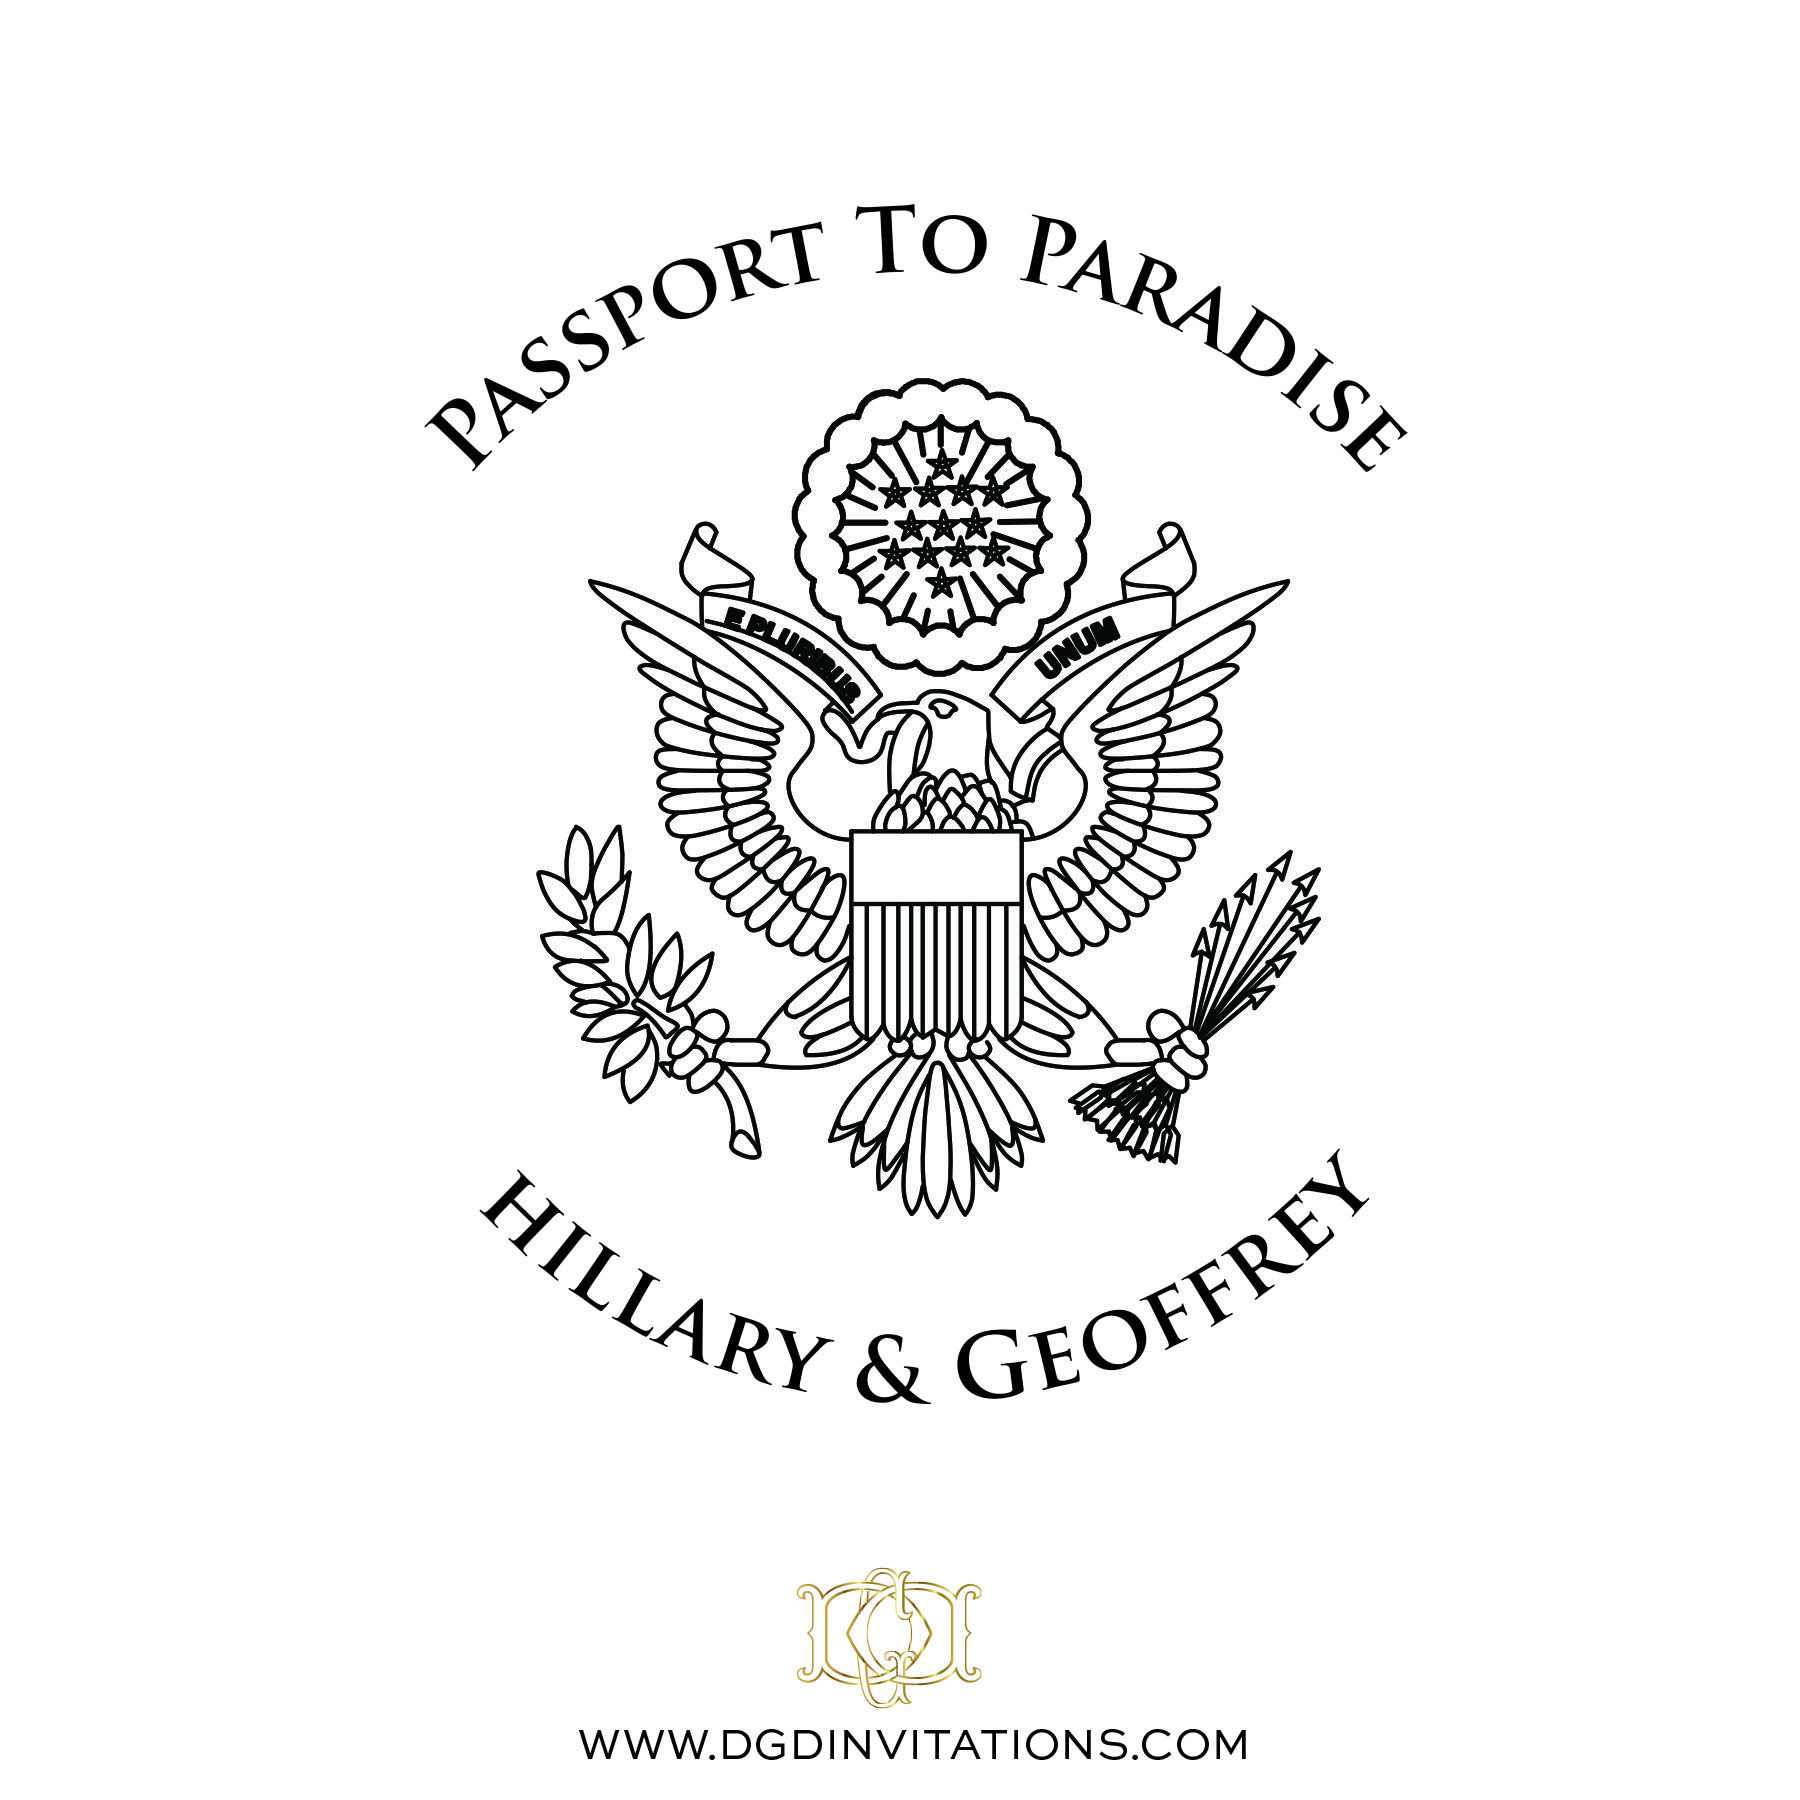 wedding invitation stamps Custom Rubber Stamp Passport to Paradise Wedding Invitation Cover Save The Date DIY Boarding Pass